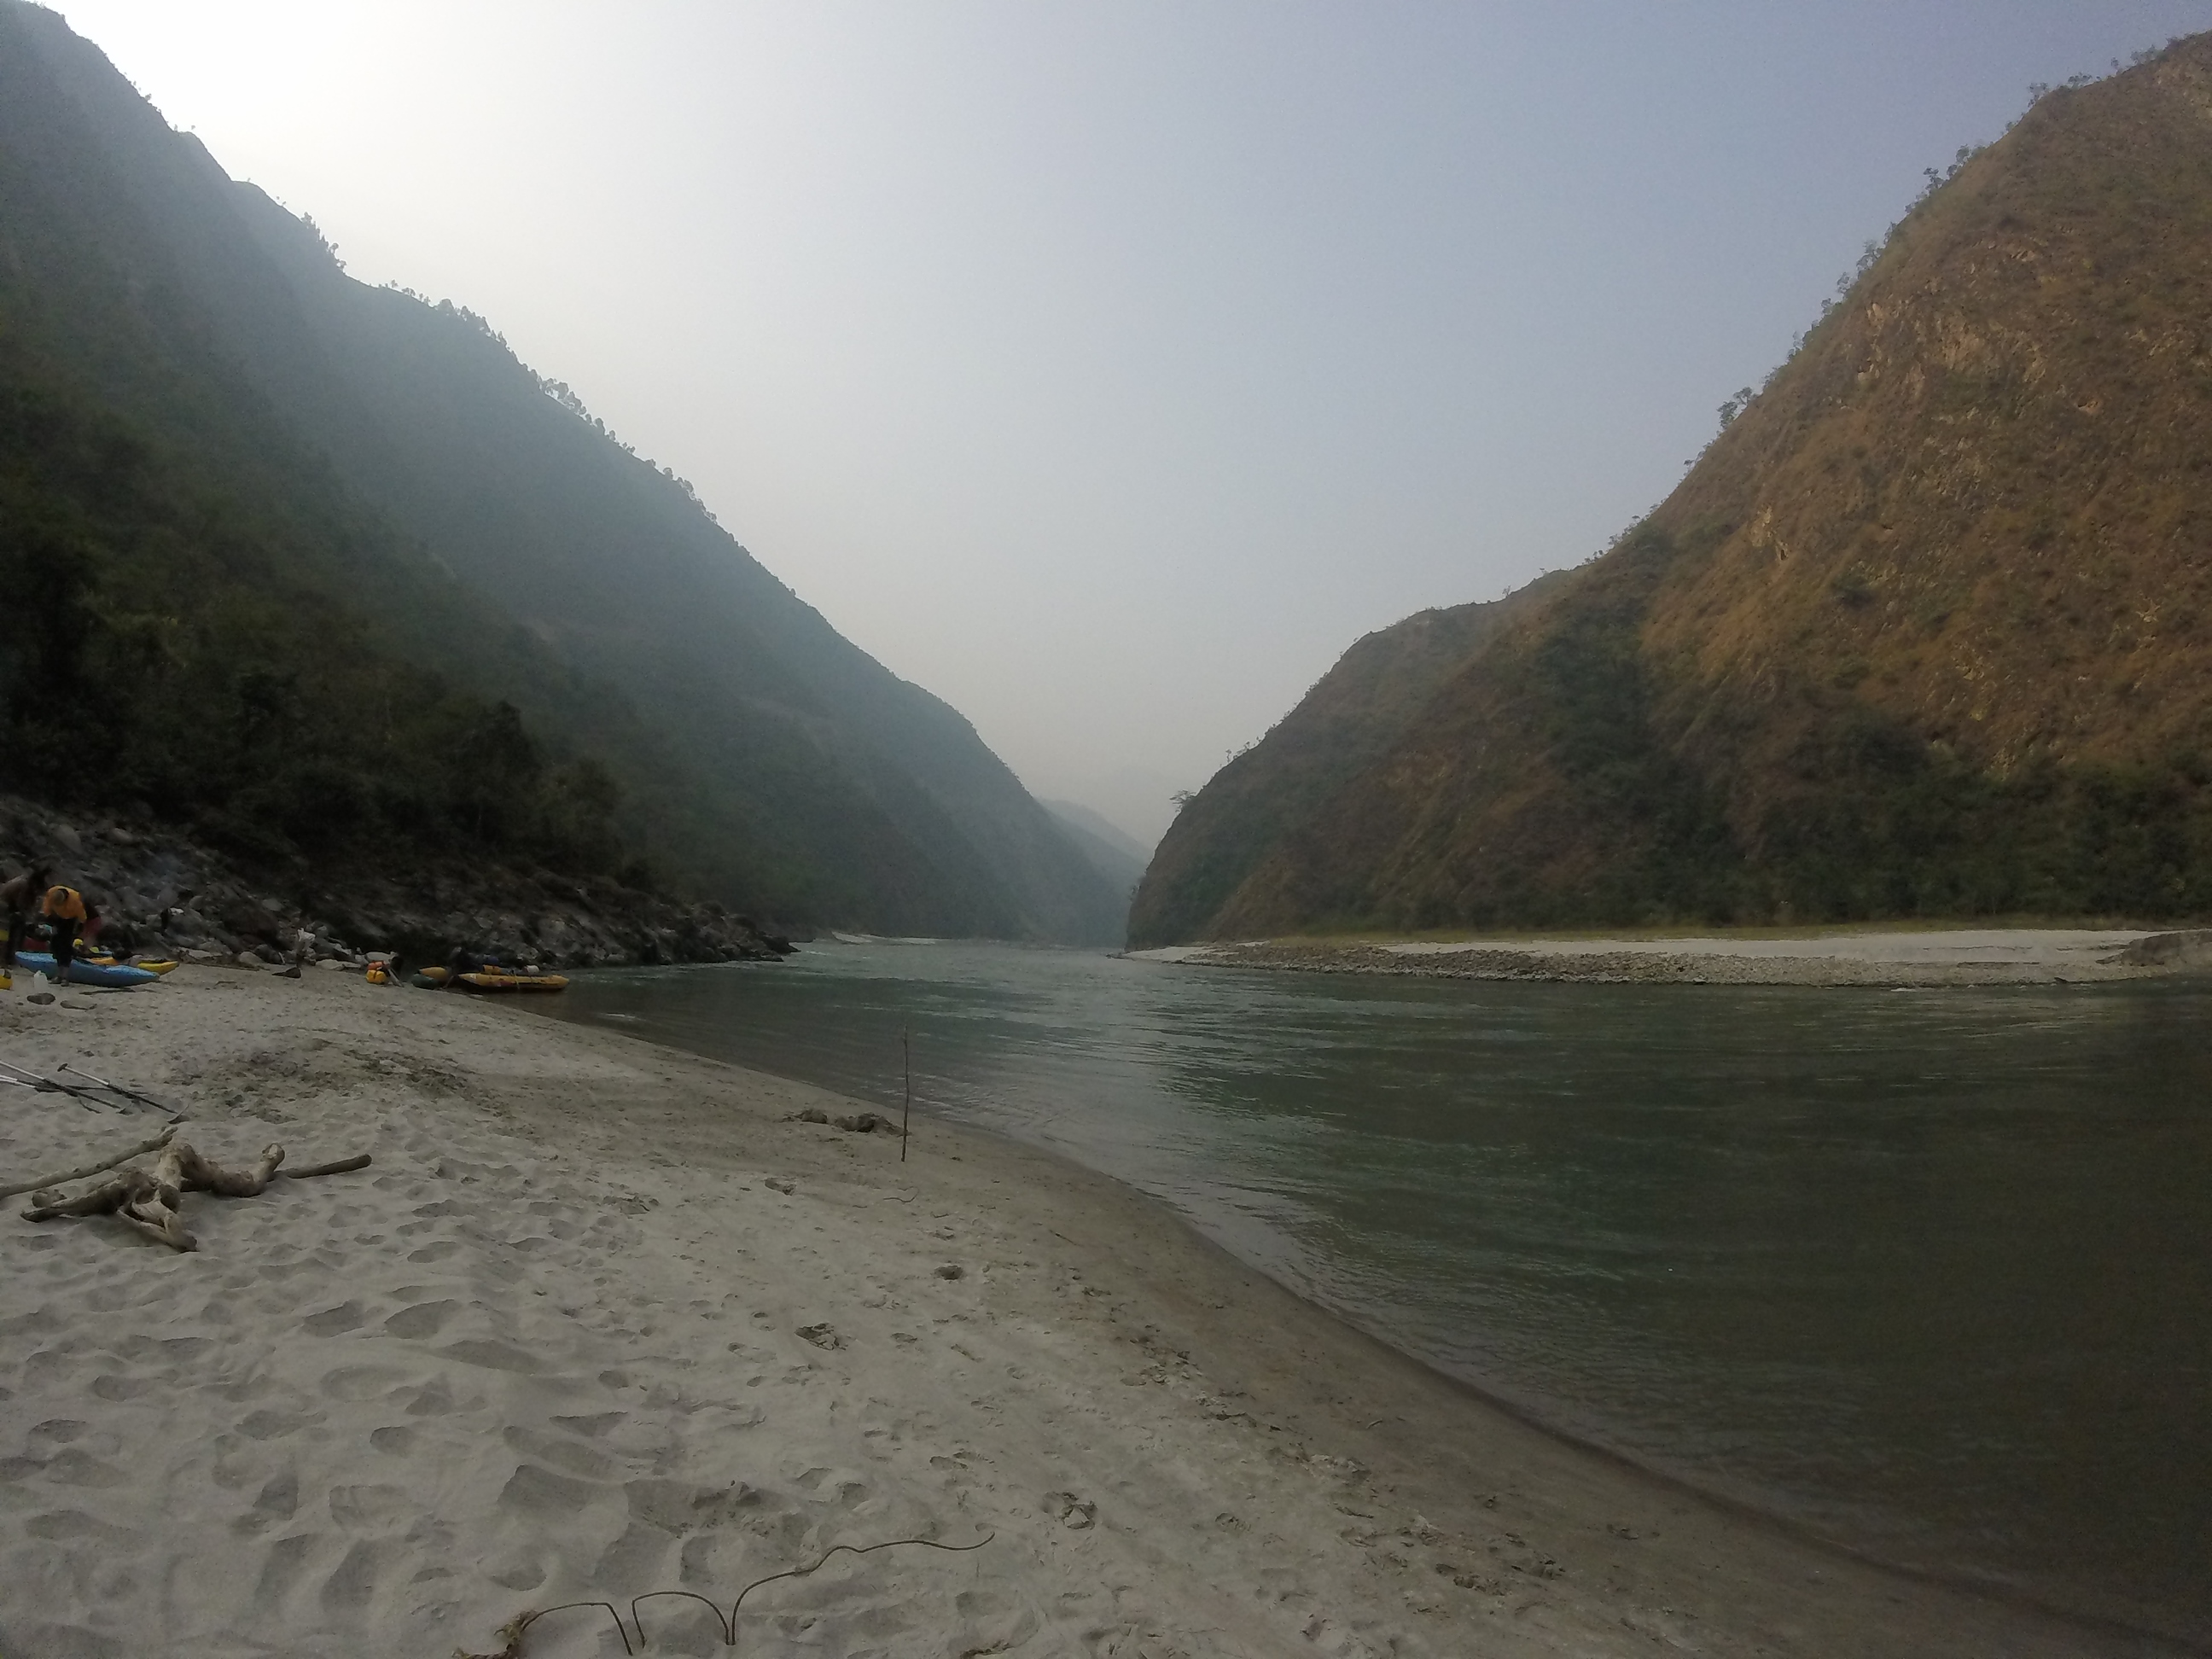 Photo: A typical river beach along Nepal's Sun Kosi River. Elen Turner